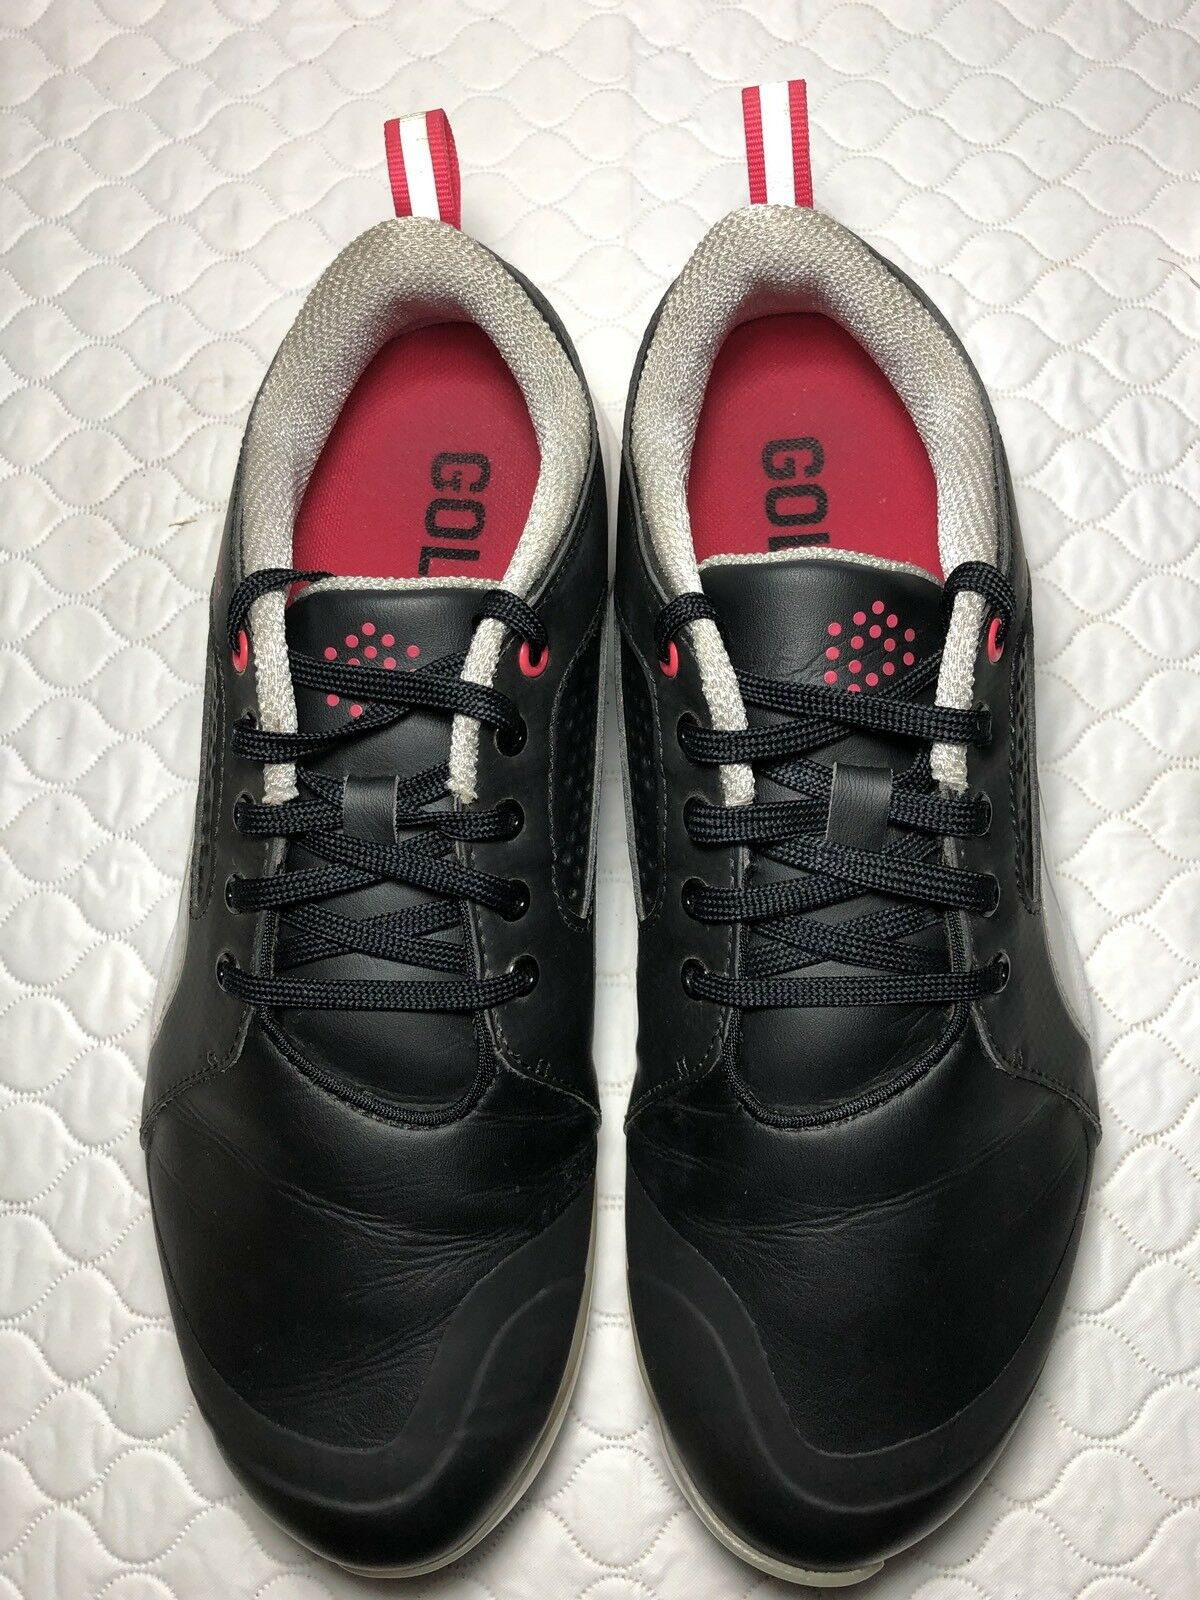 Puma Golf Women's Black Leather Athletic Sneakers  Comfortable Wild casual shoes